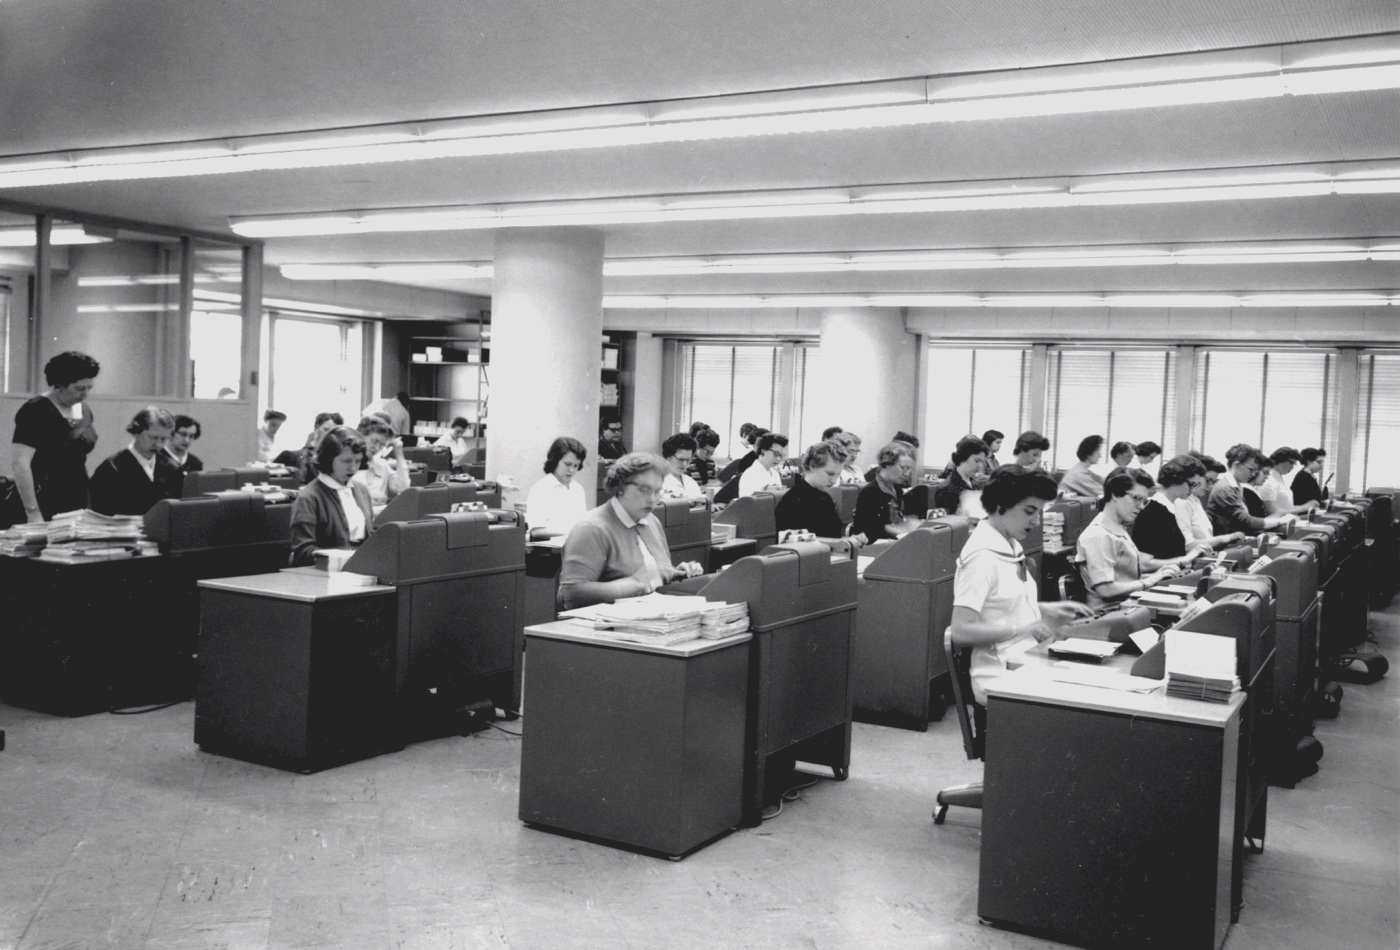 Office work in the 50s